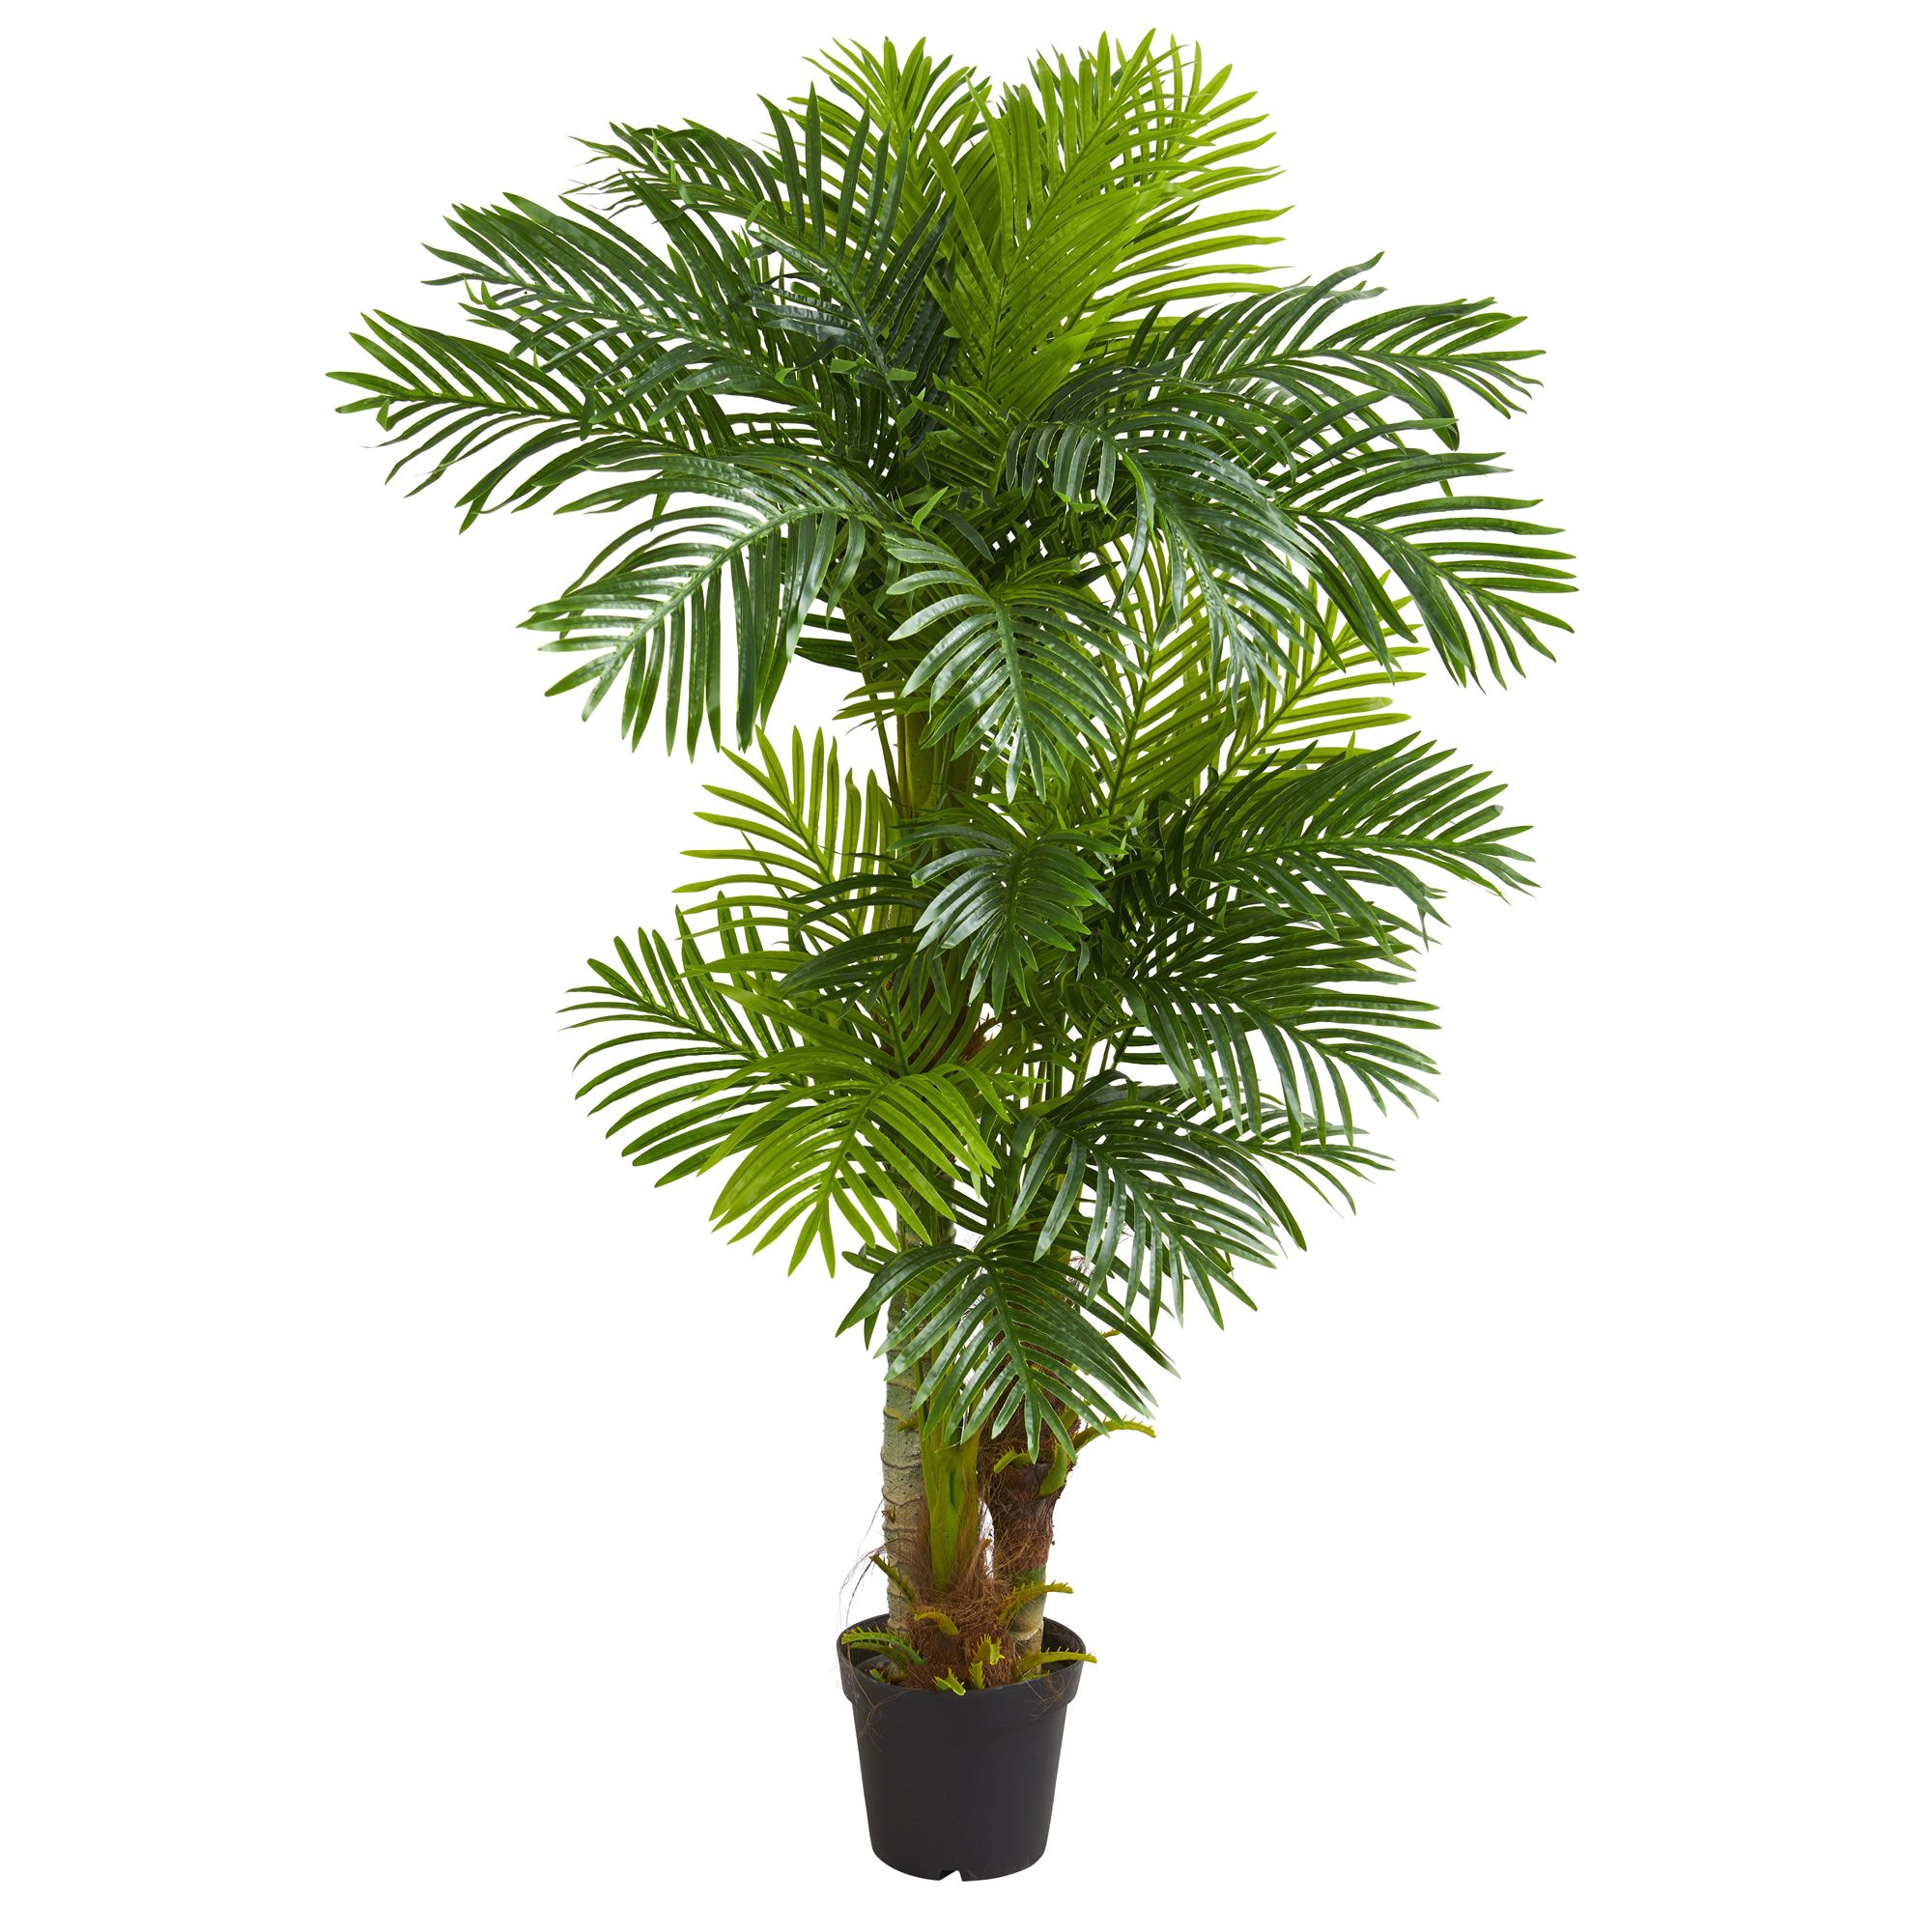 standing at six feet tall this artificial hawaii palm tree will effortlessly fill your home or office with a tropical warmth the lush green leaves that